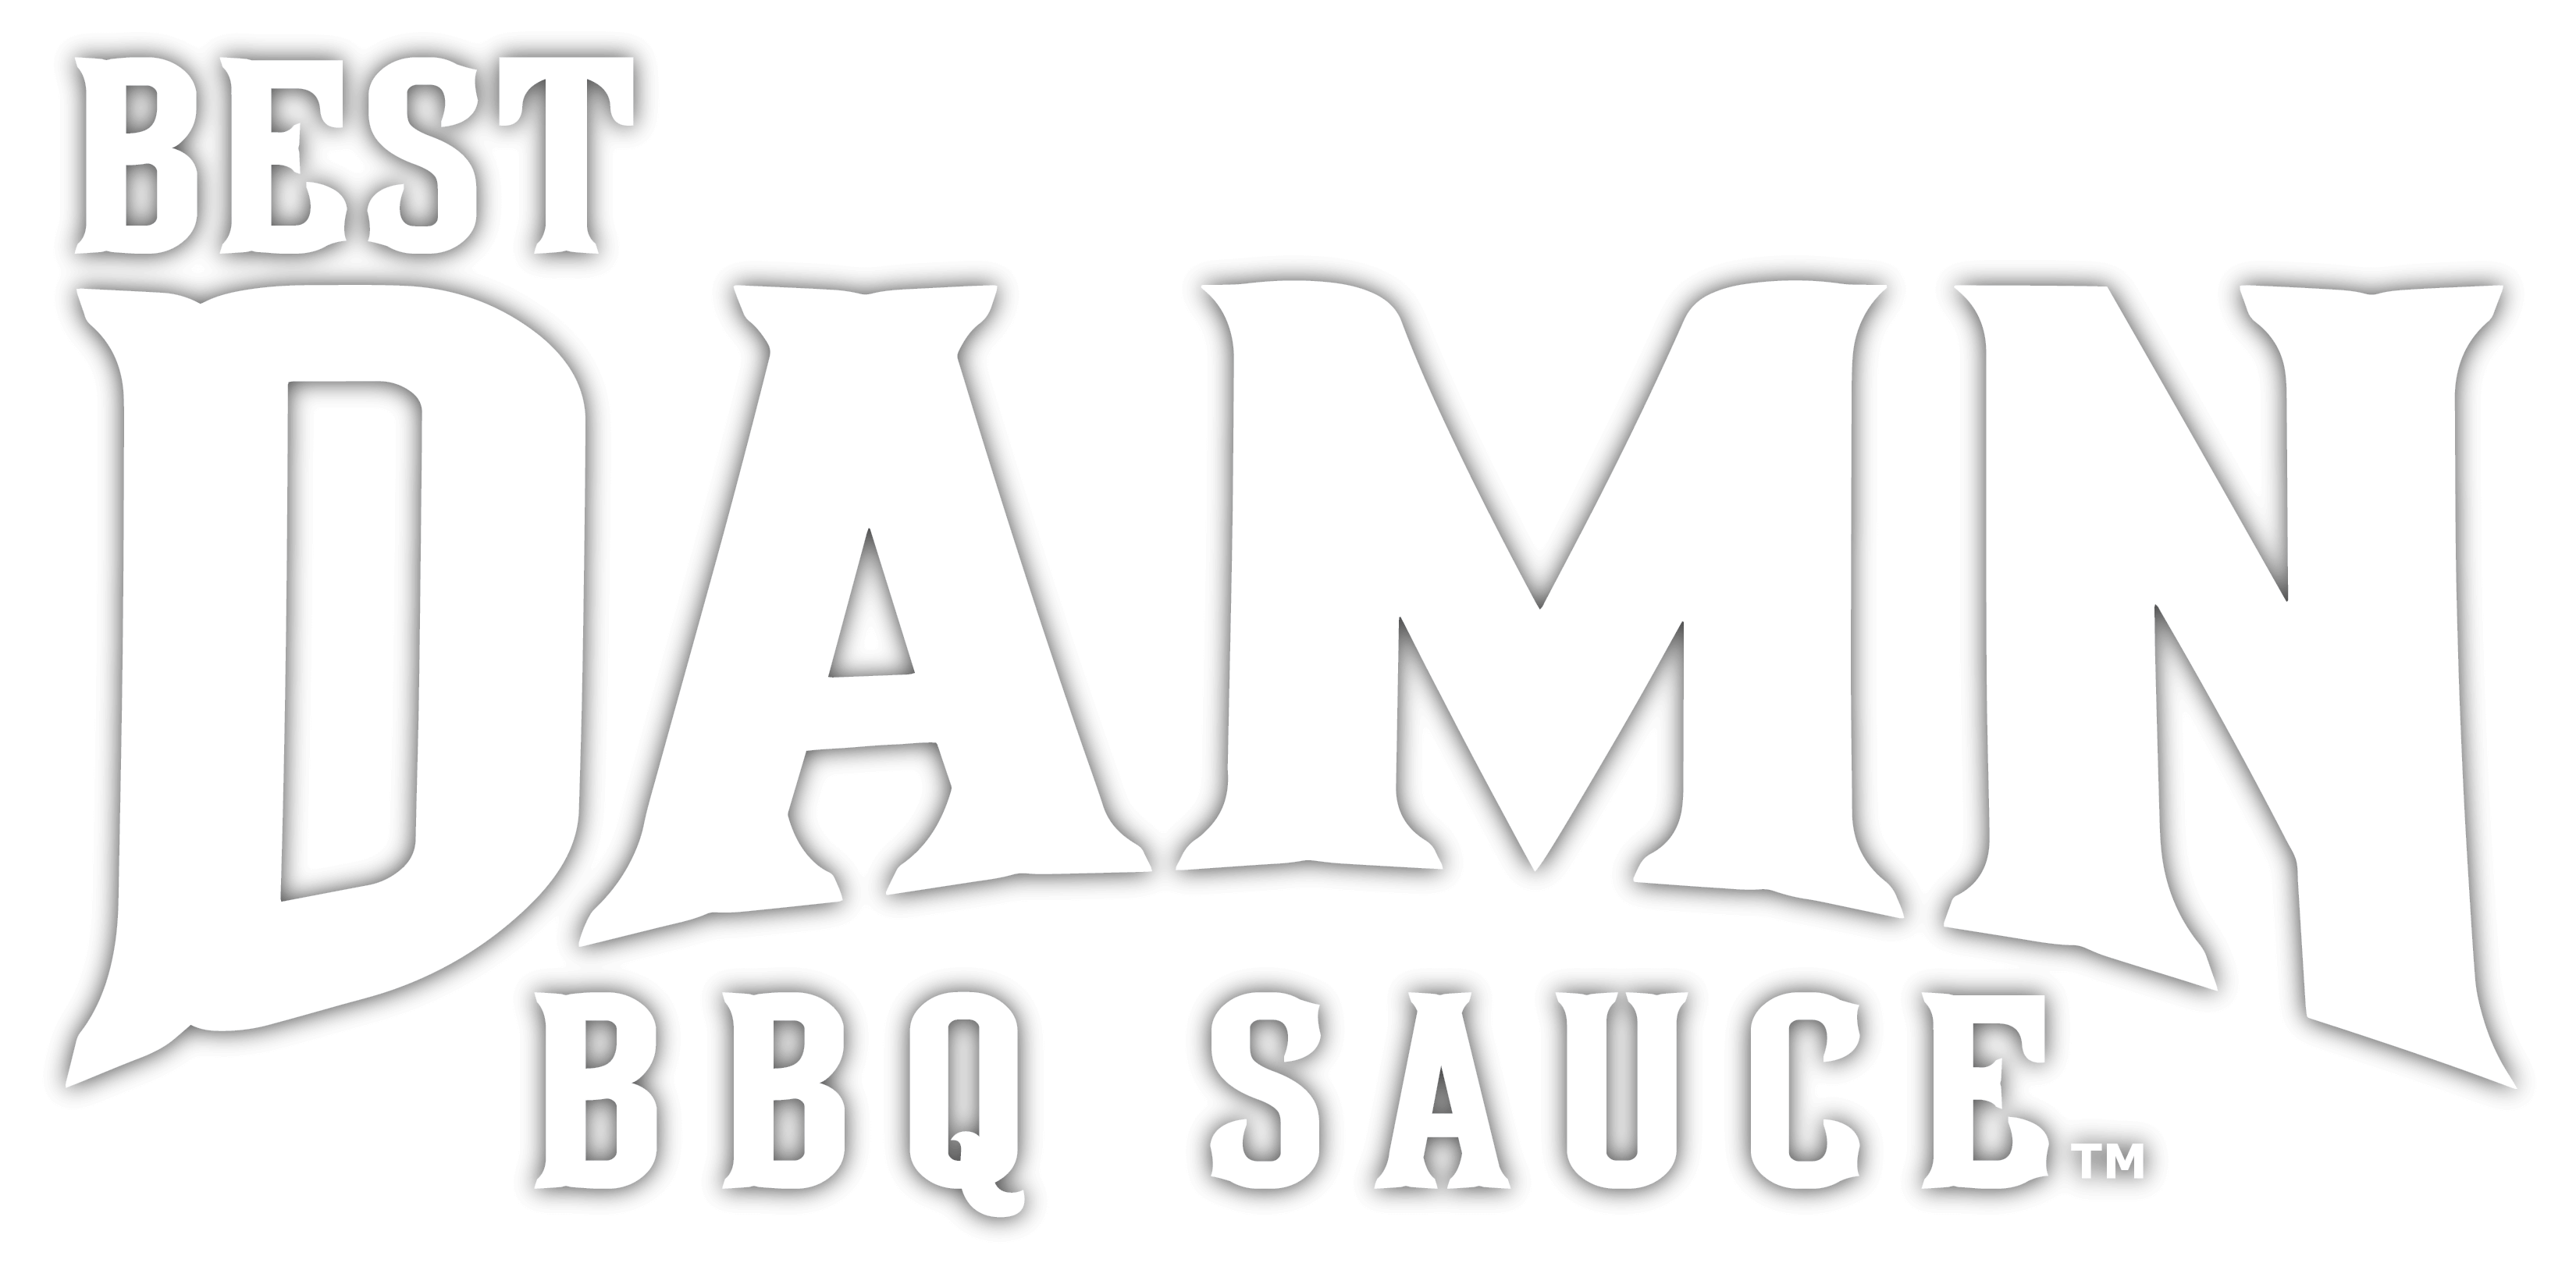 best damn bbq logo white